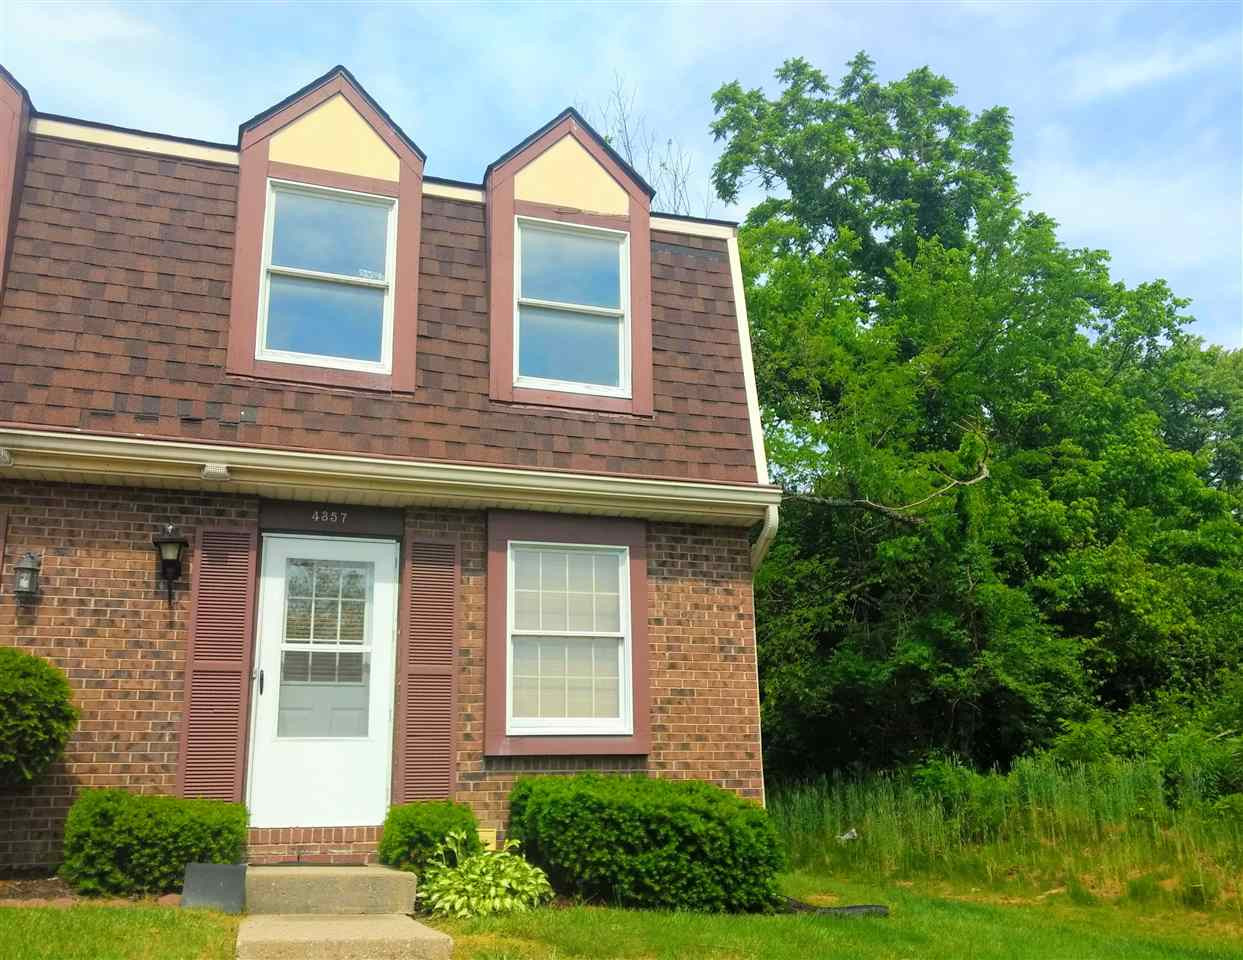 Photo 1 for 4357 Beechgrove Dr Independence, KY 41051